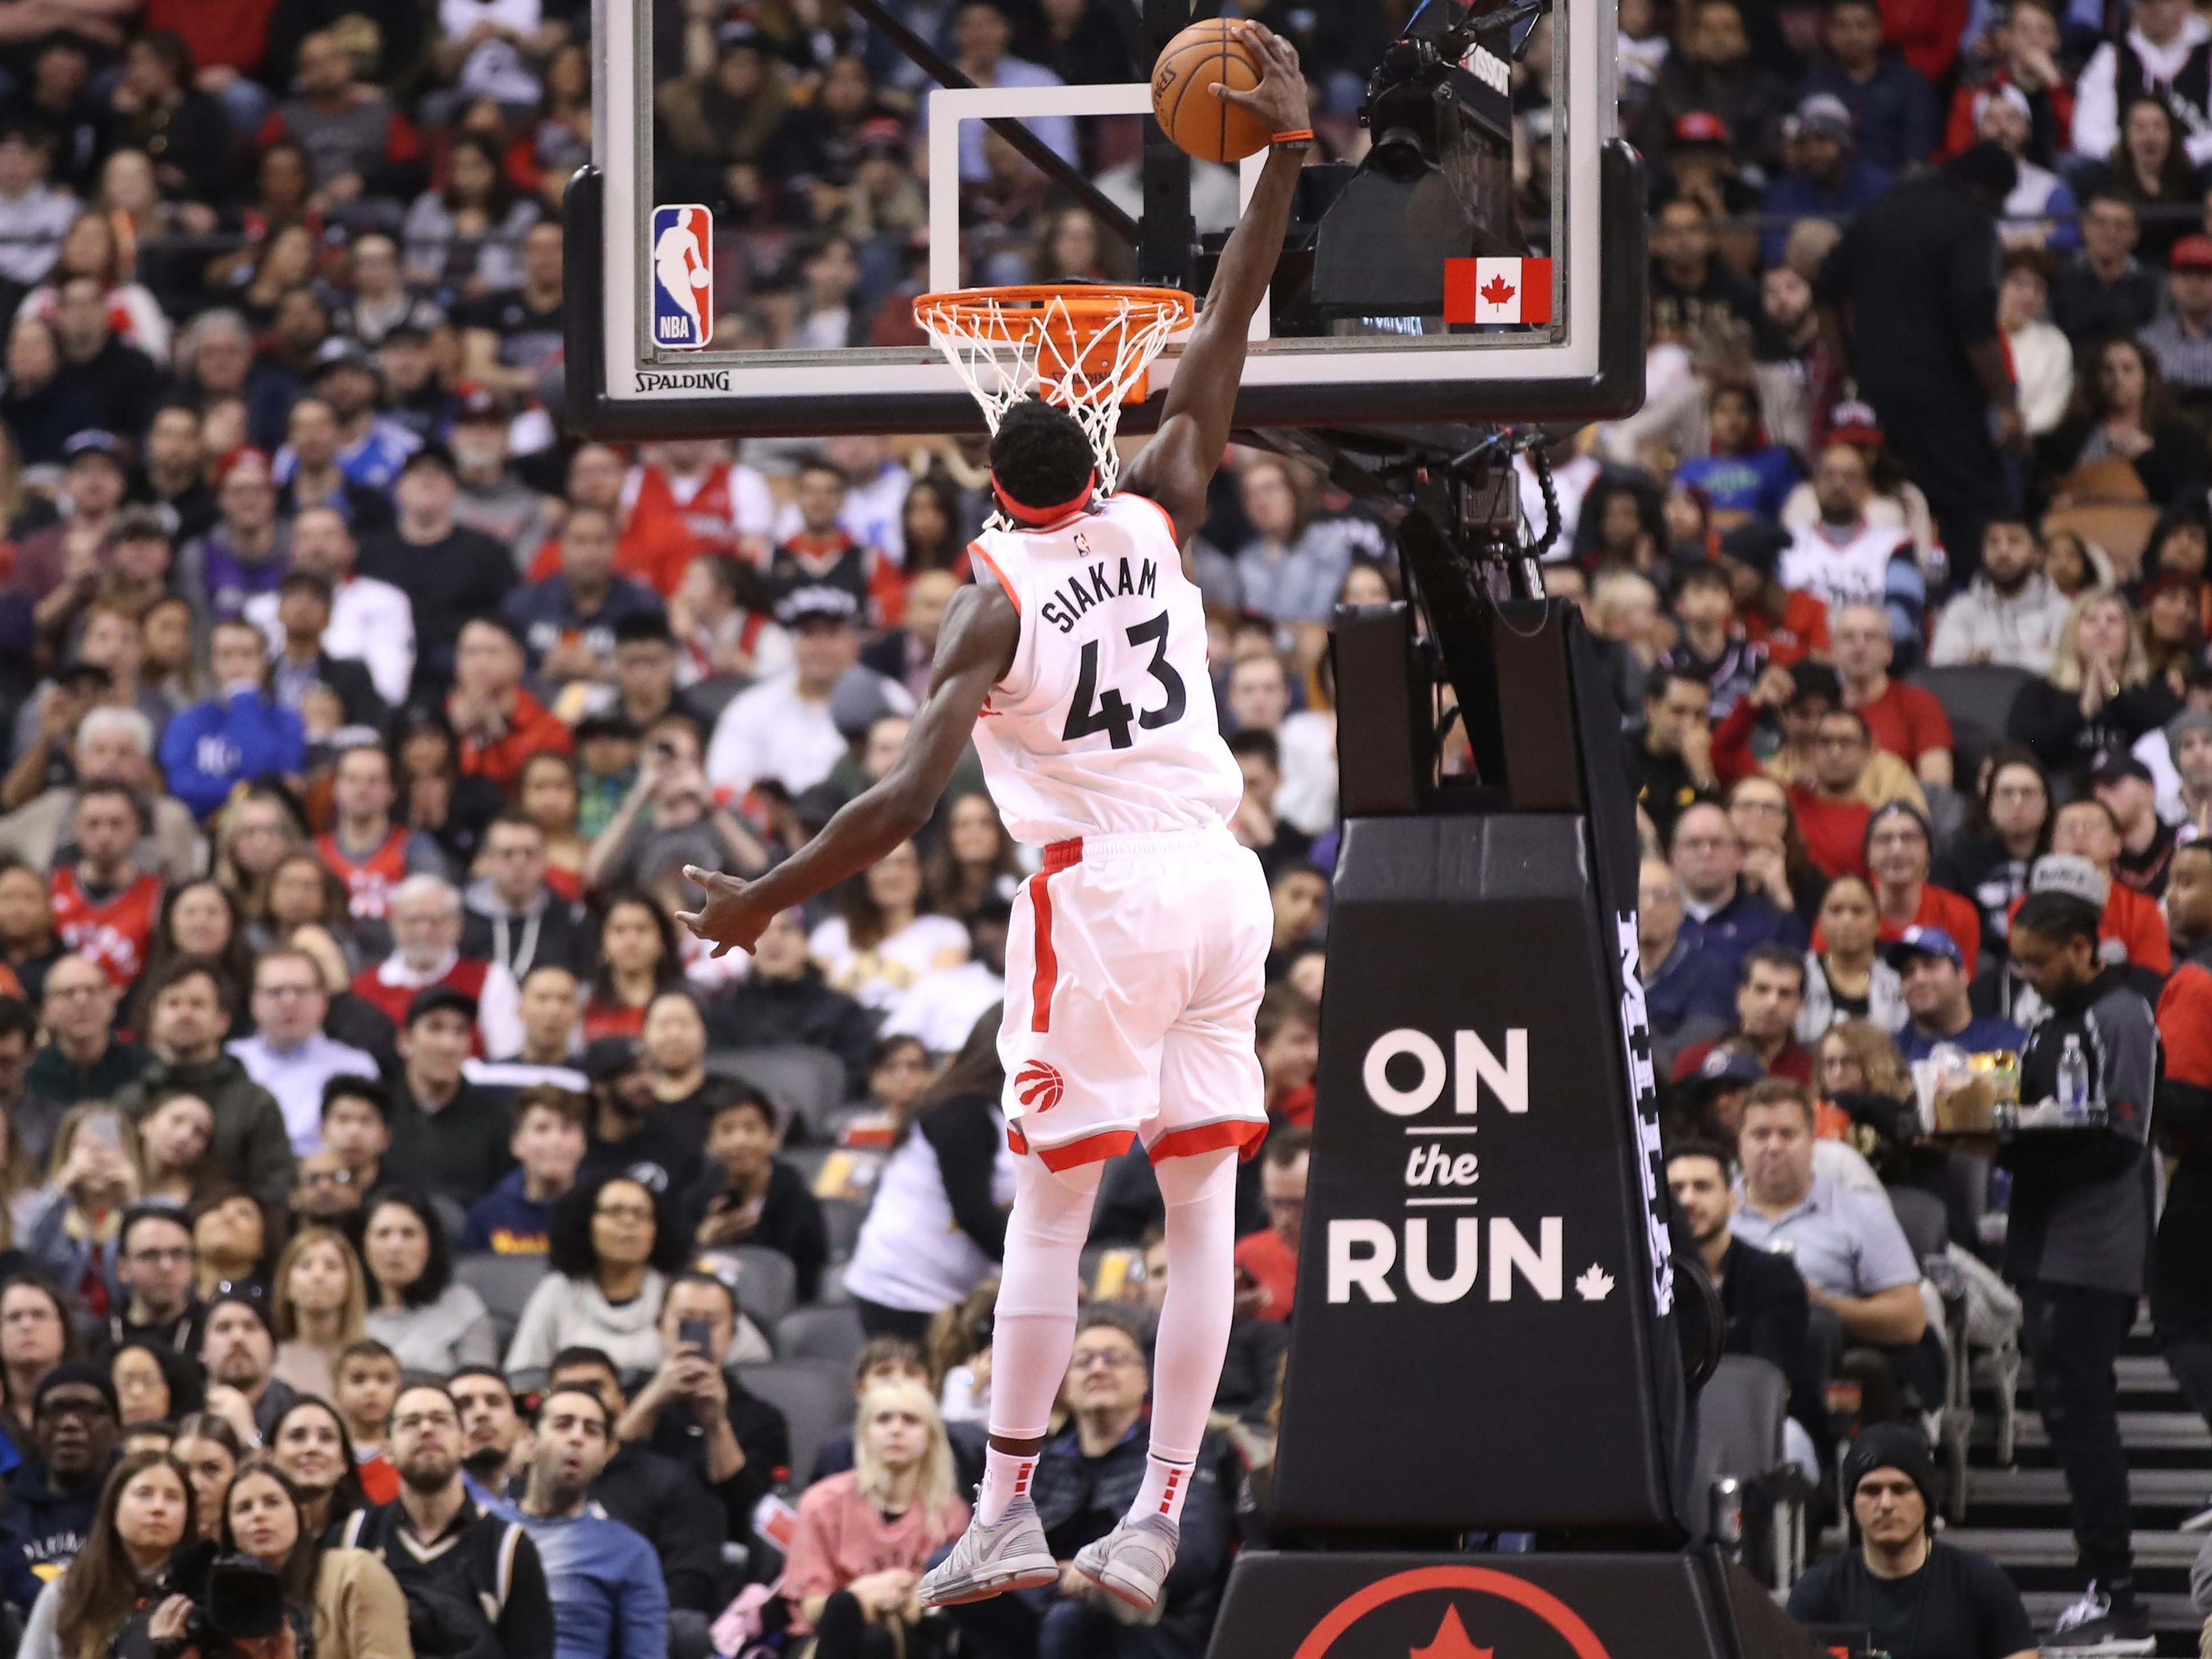 Feb. 3: Raptors forward Pascal Siakam rises up for the one-handed slam against the Clippers in Toronto.